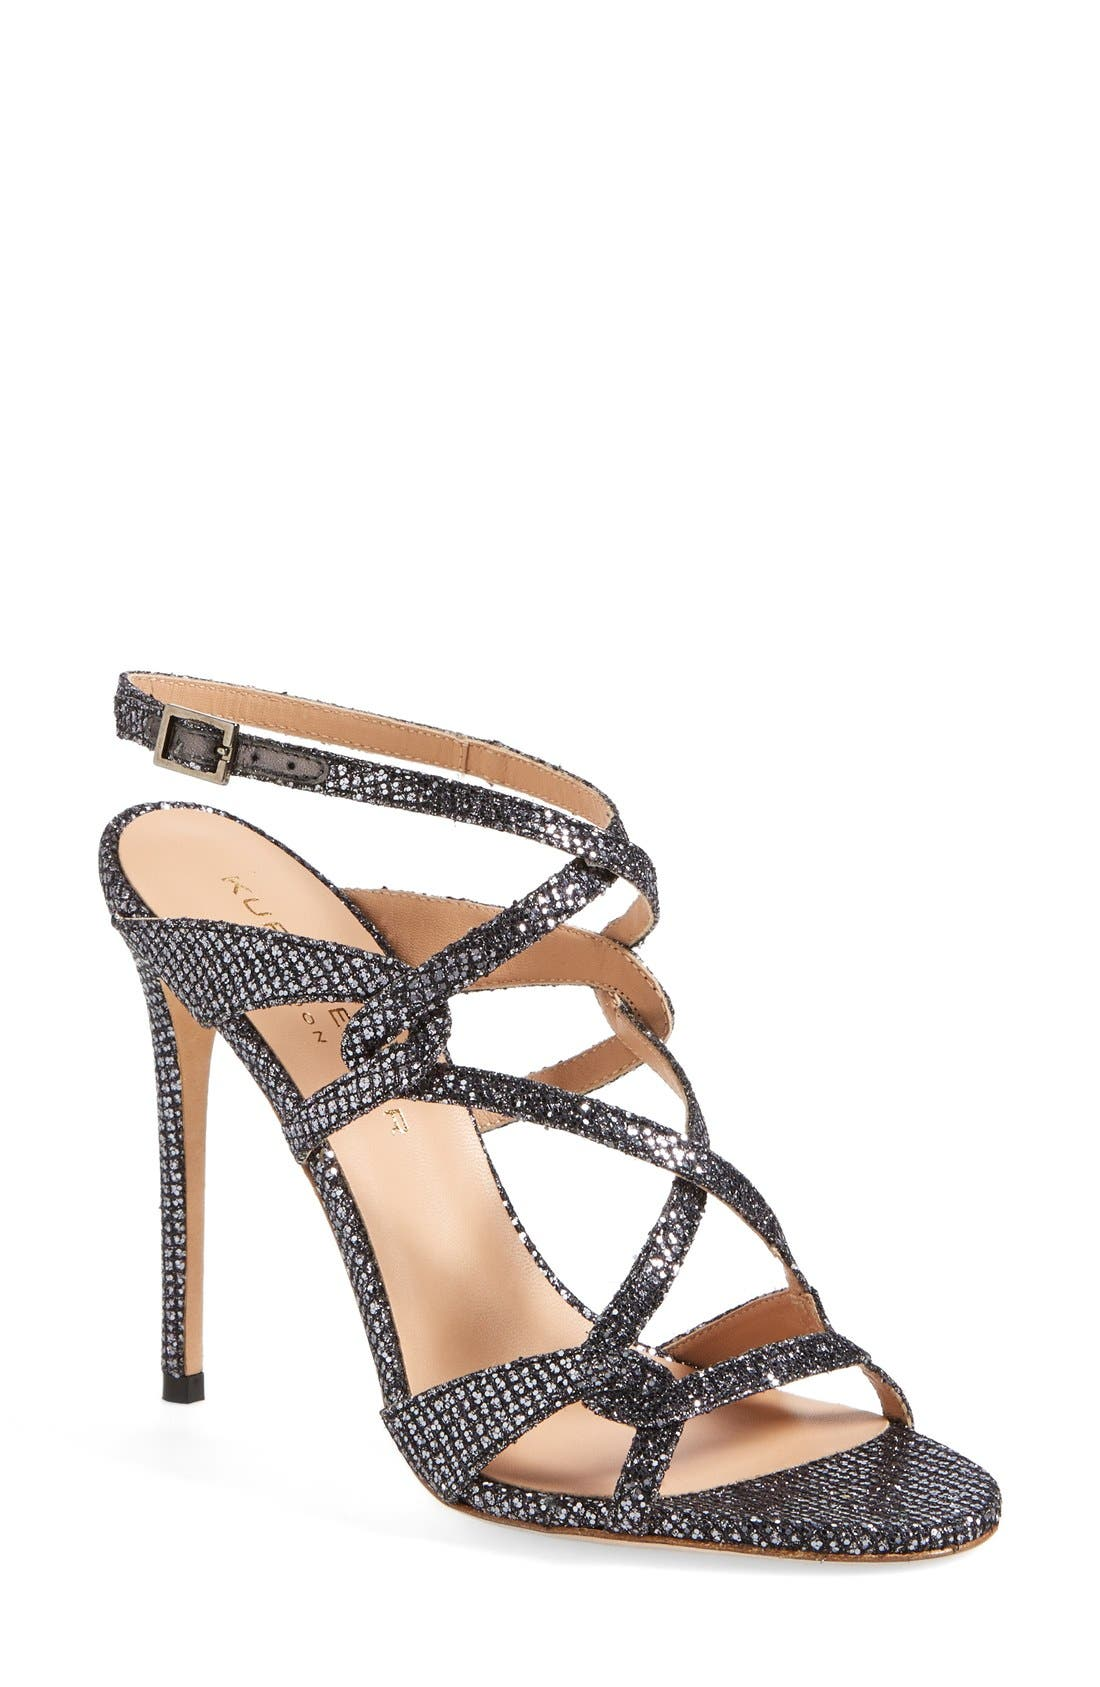 Alternate Image 1 Selected - Kurt Geiger London 'Maxi' Strappy Sandal (Women)